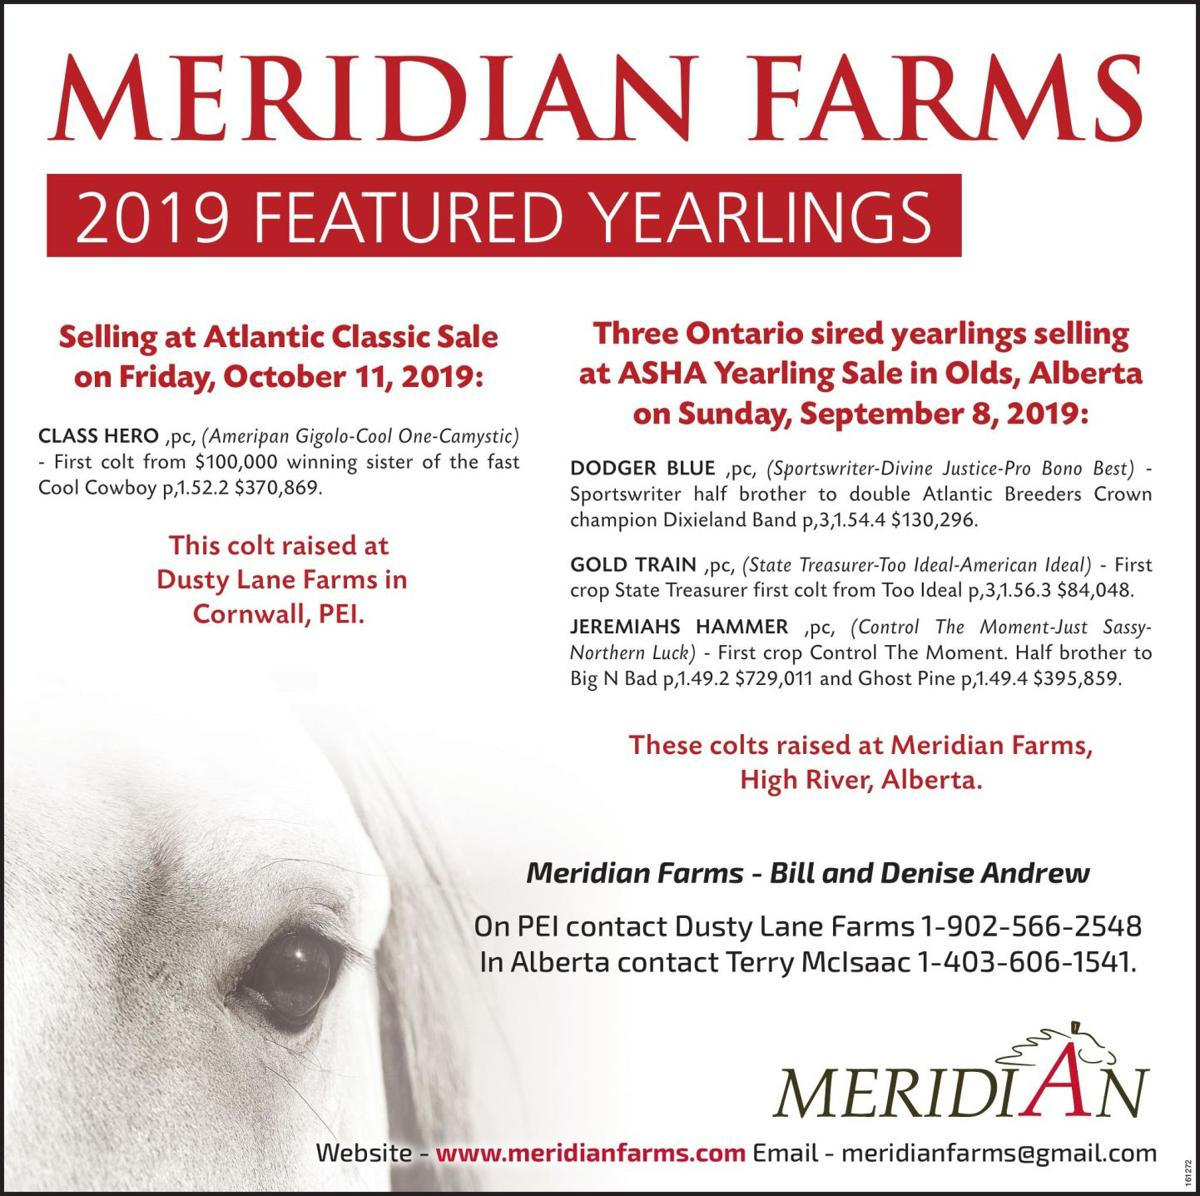 MERIDIAN FARMS